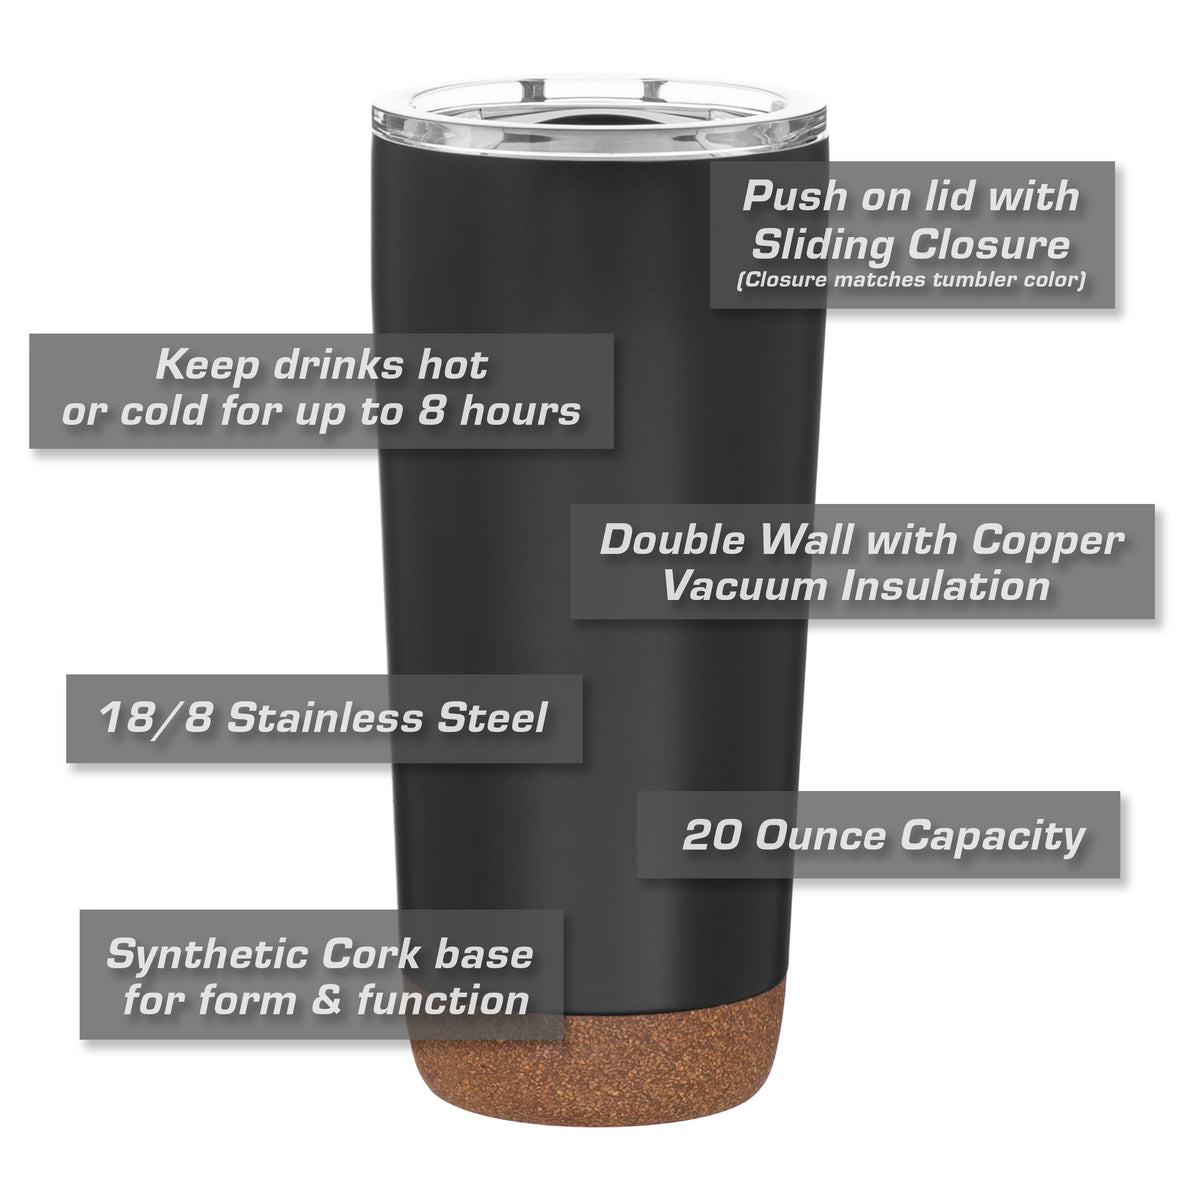 Audi RS3 S3 Hatchback Insulated Stainless Steel Coffee Tumbler - 20 oz